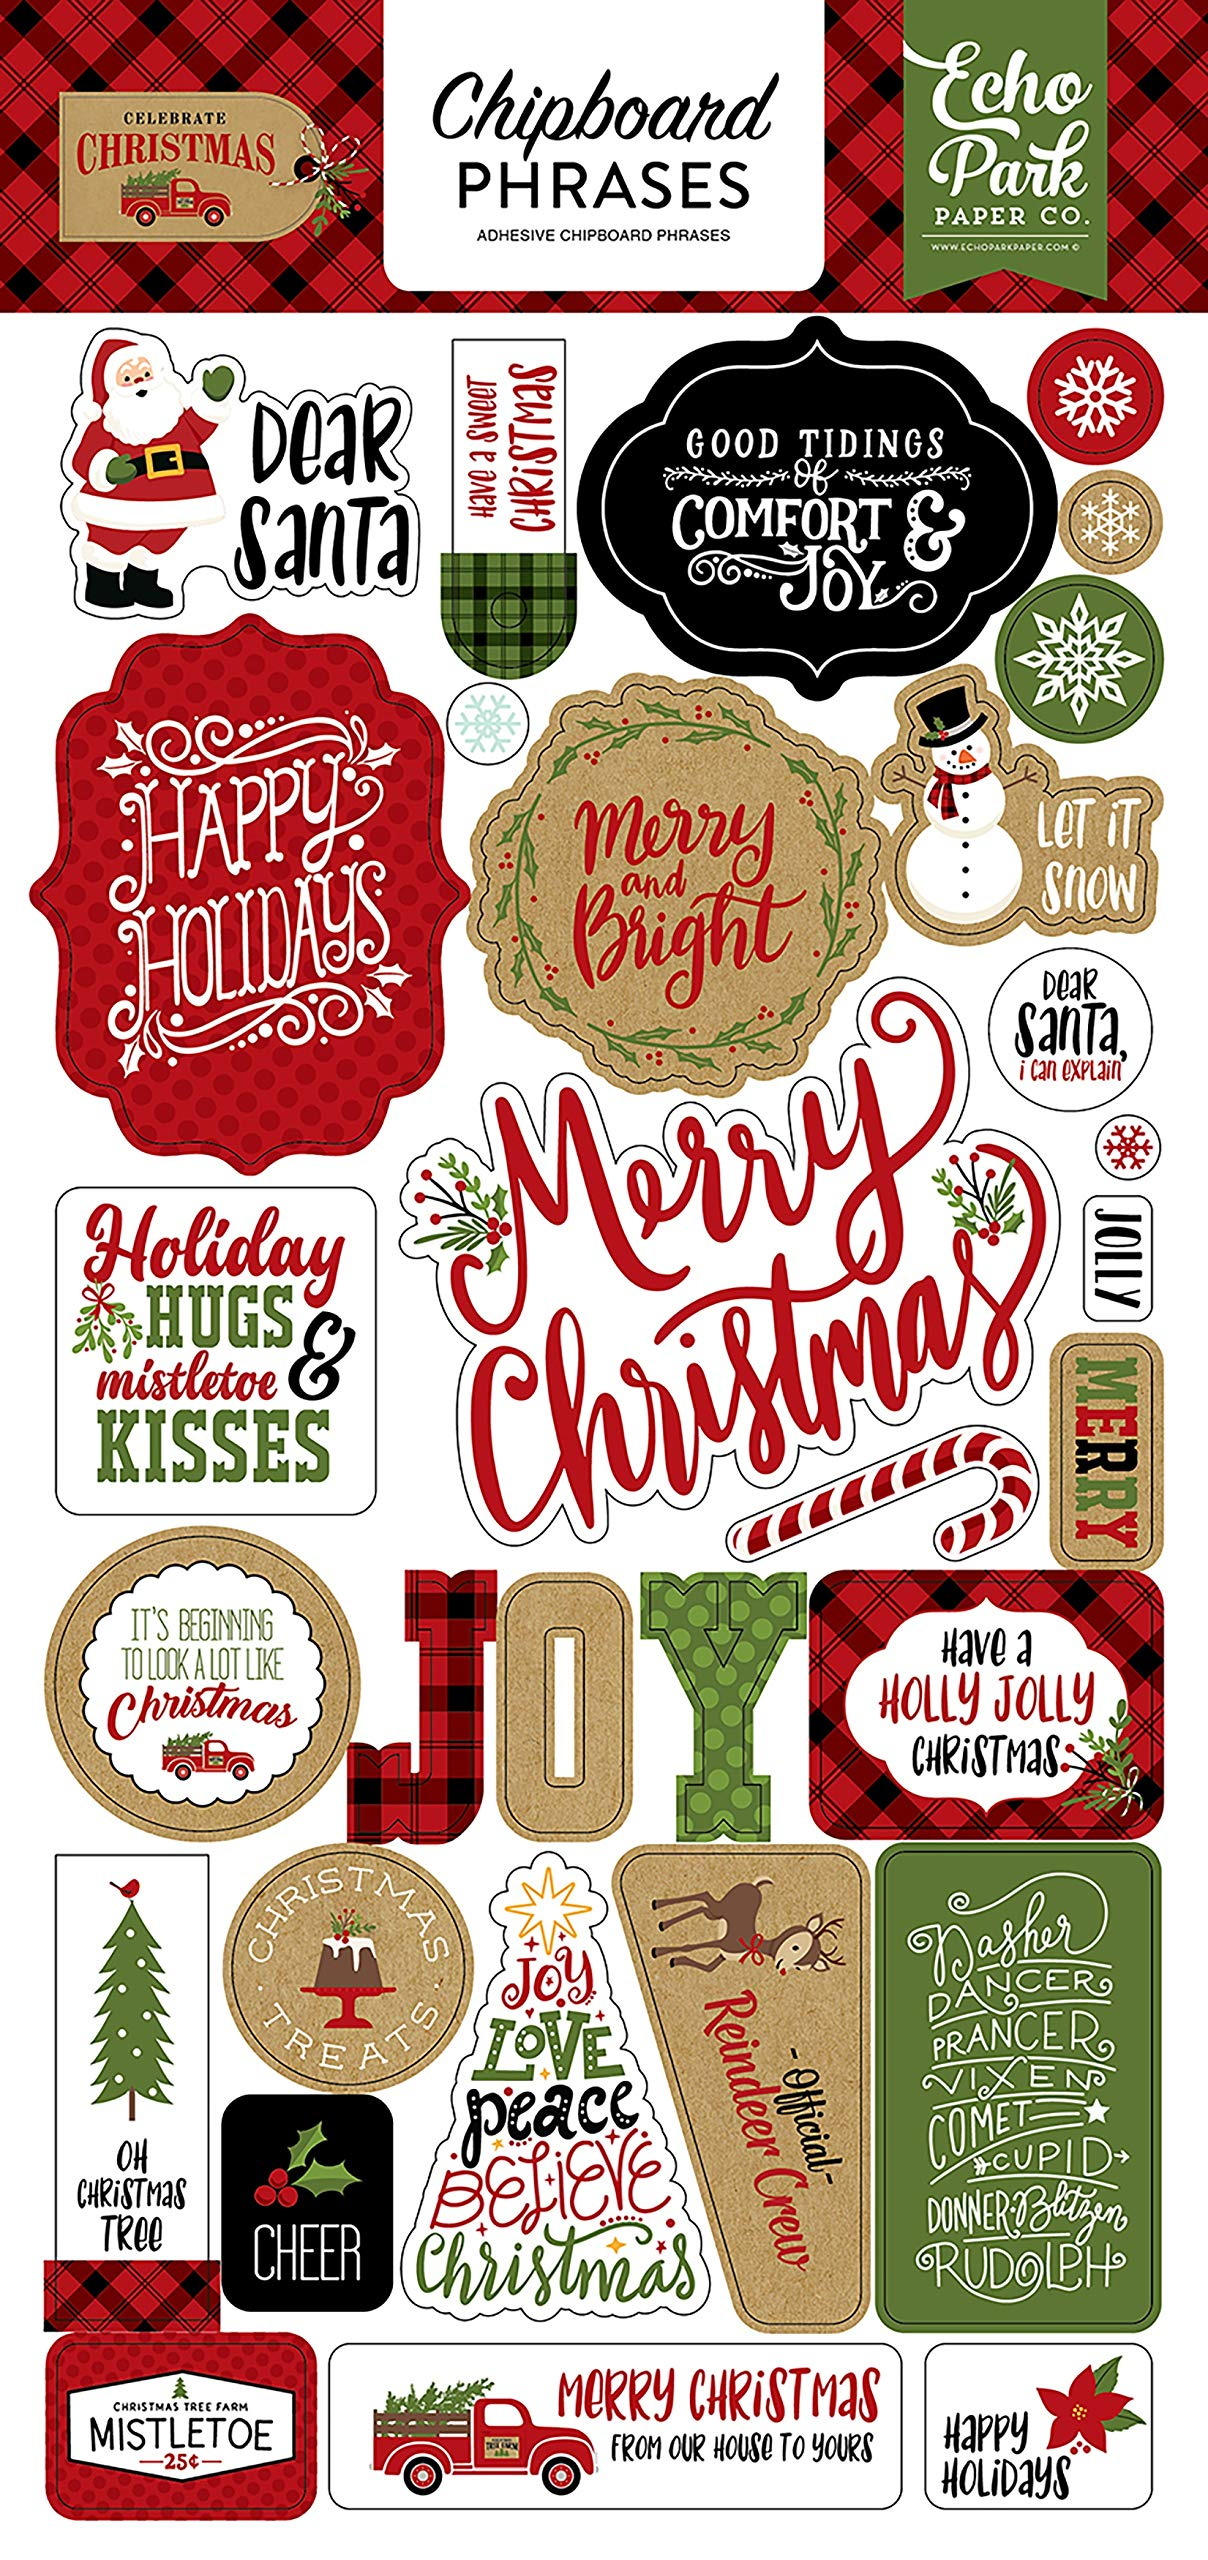 Echo Park Paper Company CCH159022 Celebrate Christmas 6x12 Chipboard Phrases Paper, Red/Green/Tan/Burlap/Black